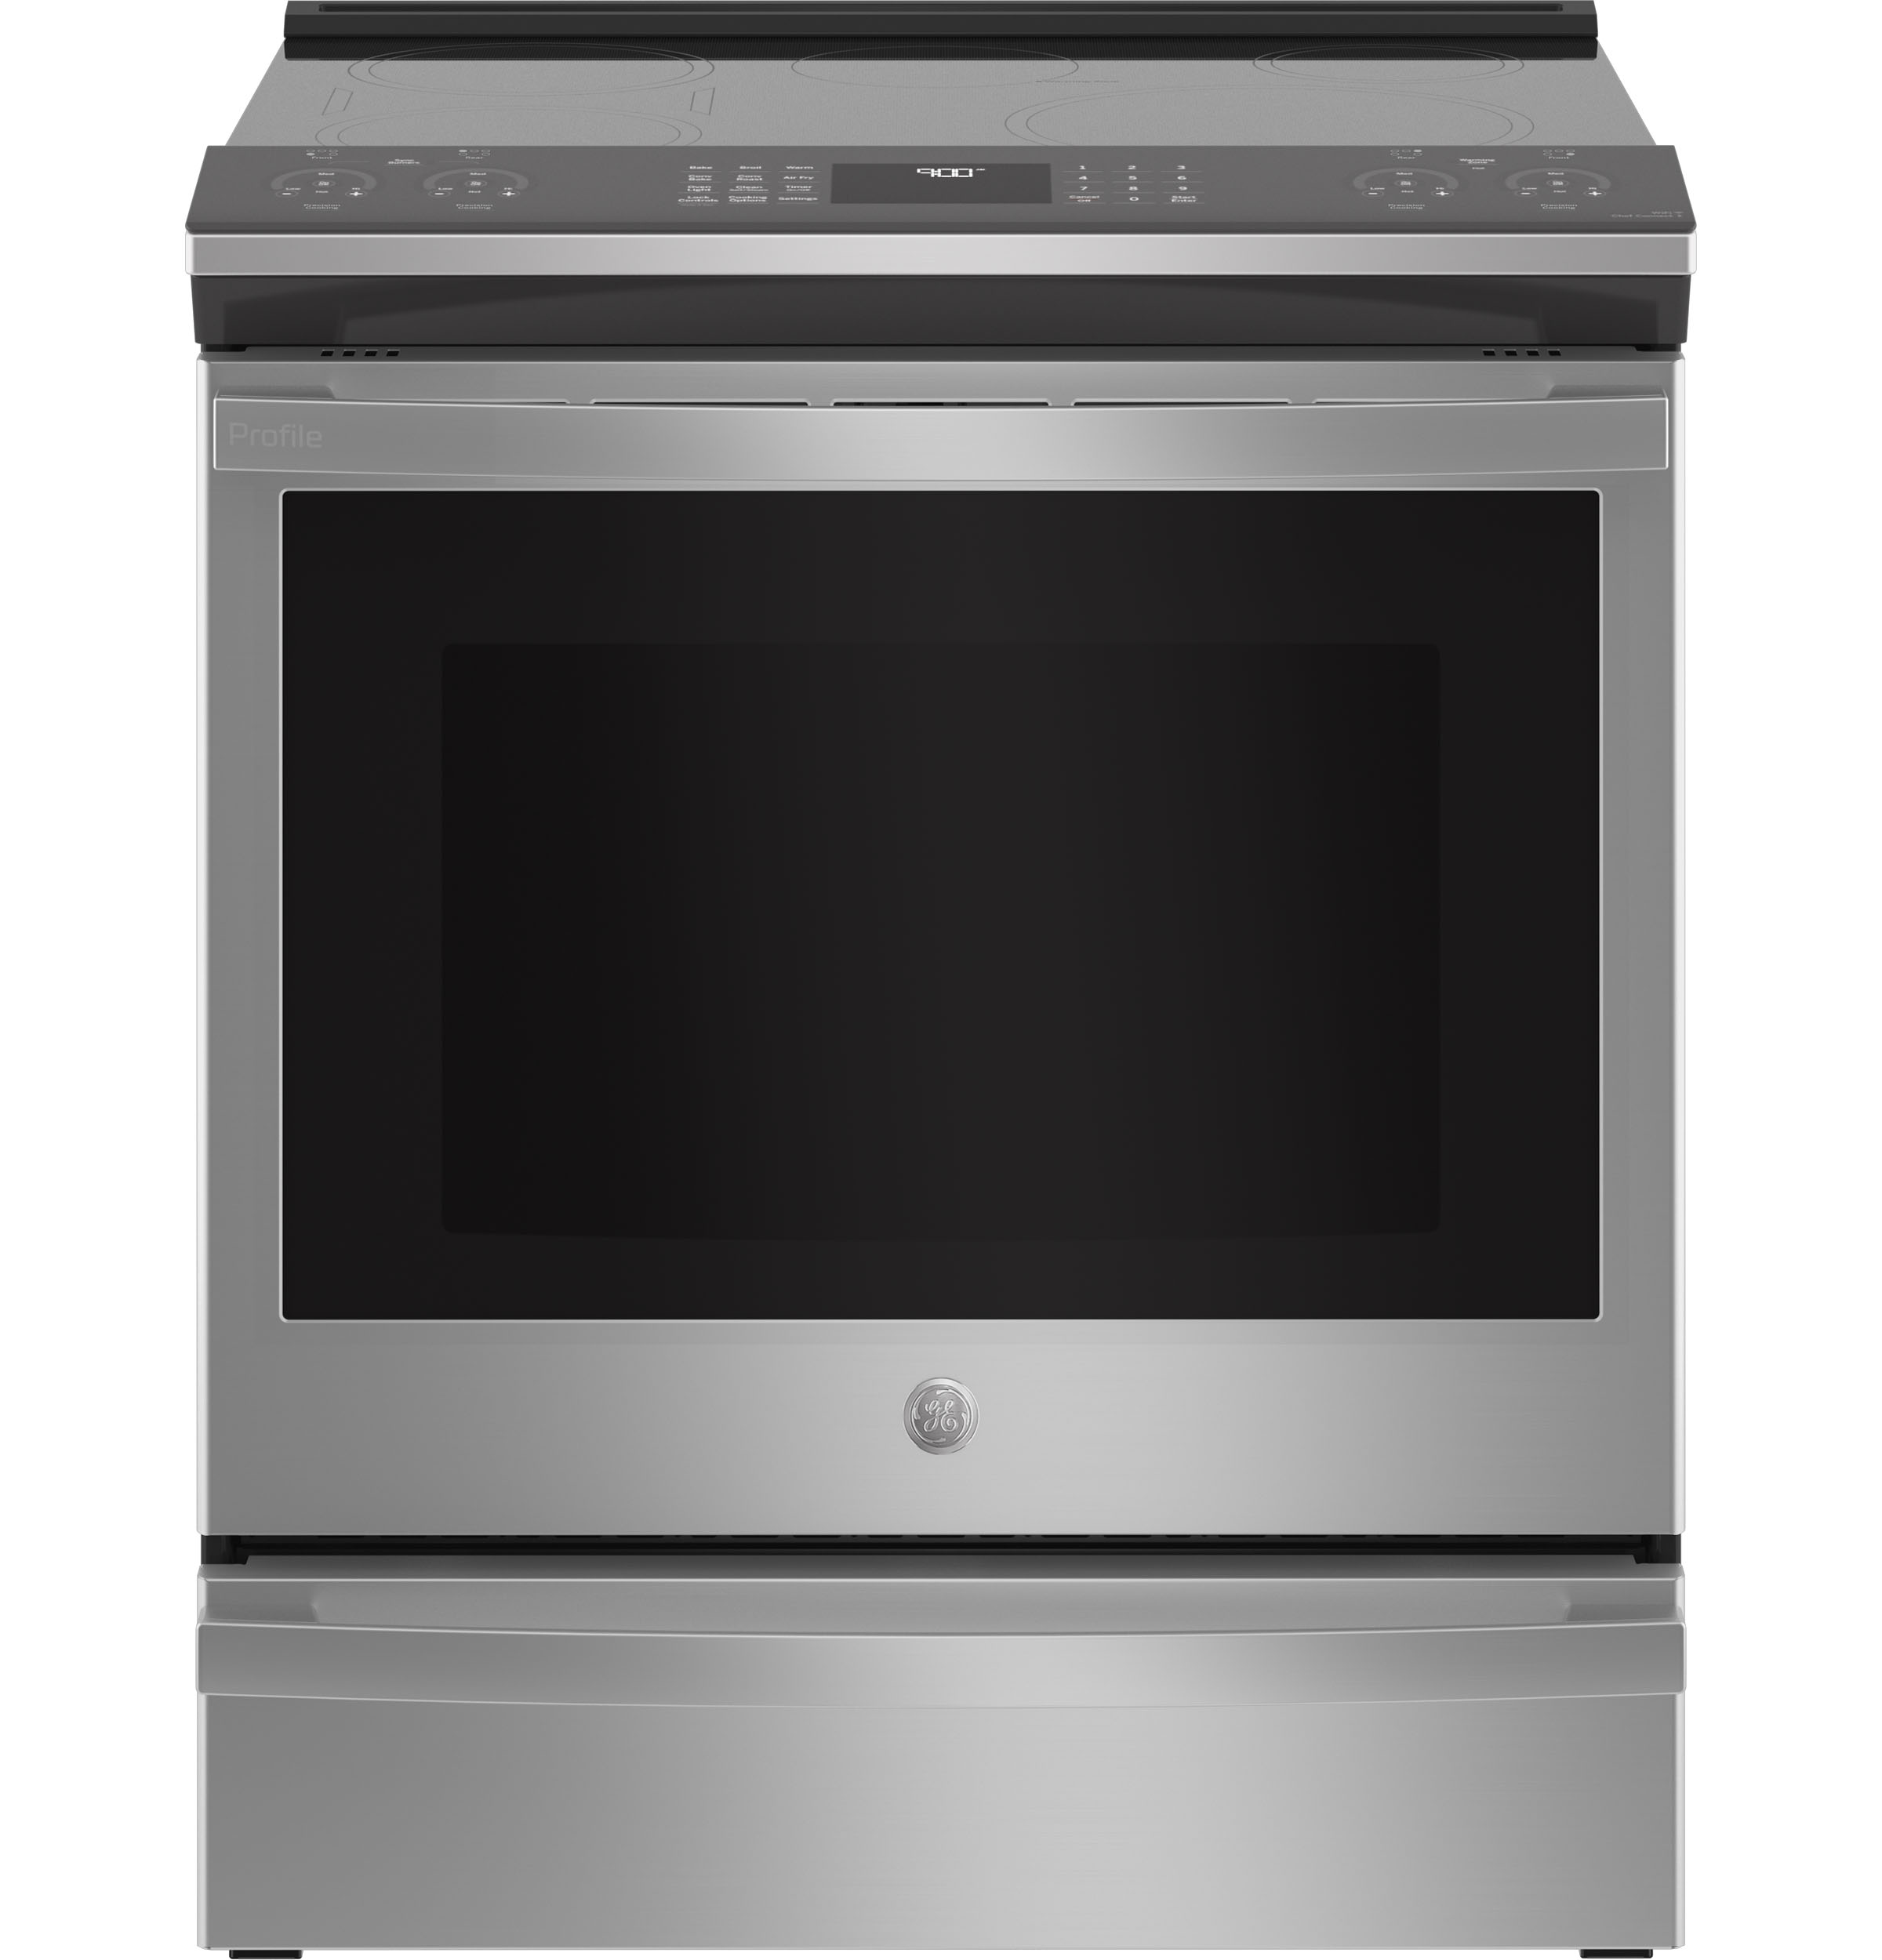 "GE Profile GE Profile™ 30"" Smart Slide-In Fingerprint Resistant Front-Control Induction and Convection Range with No Preheat Air Fry"